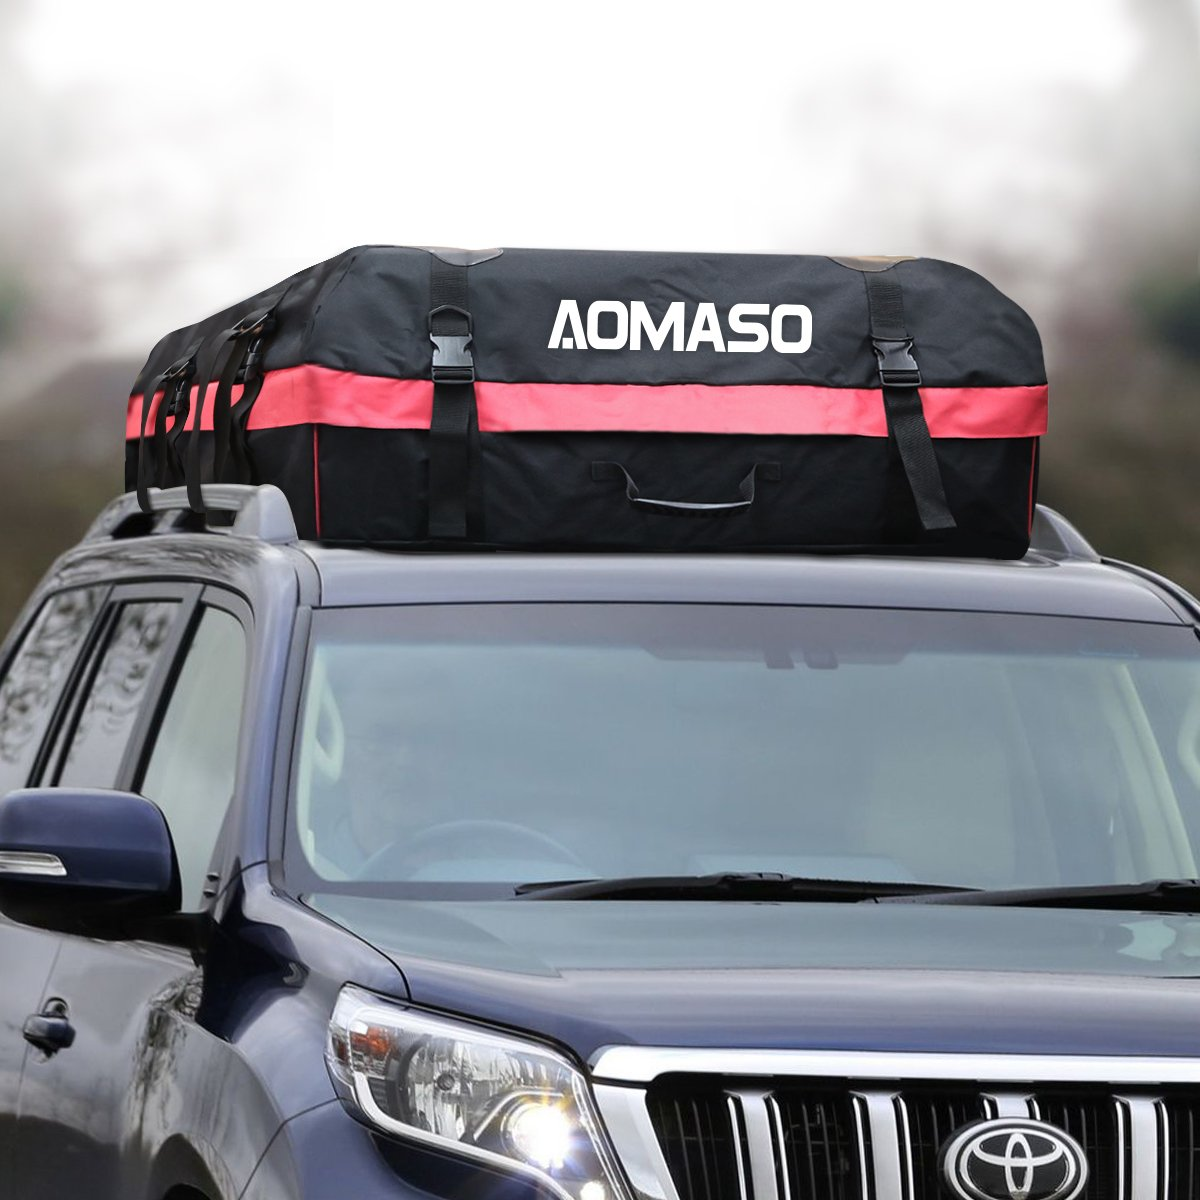 waterproof car top carrier waterproof roof luggage travel cargo rack ebay. Black Bedroom Furniture Sets. Home Design Ideas